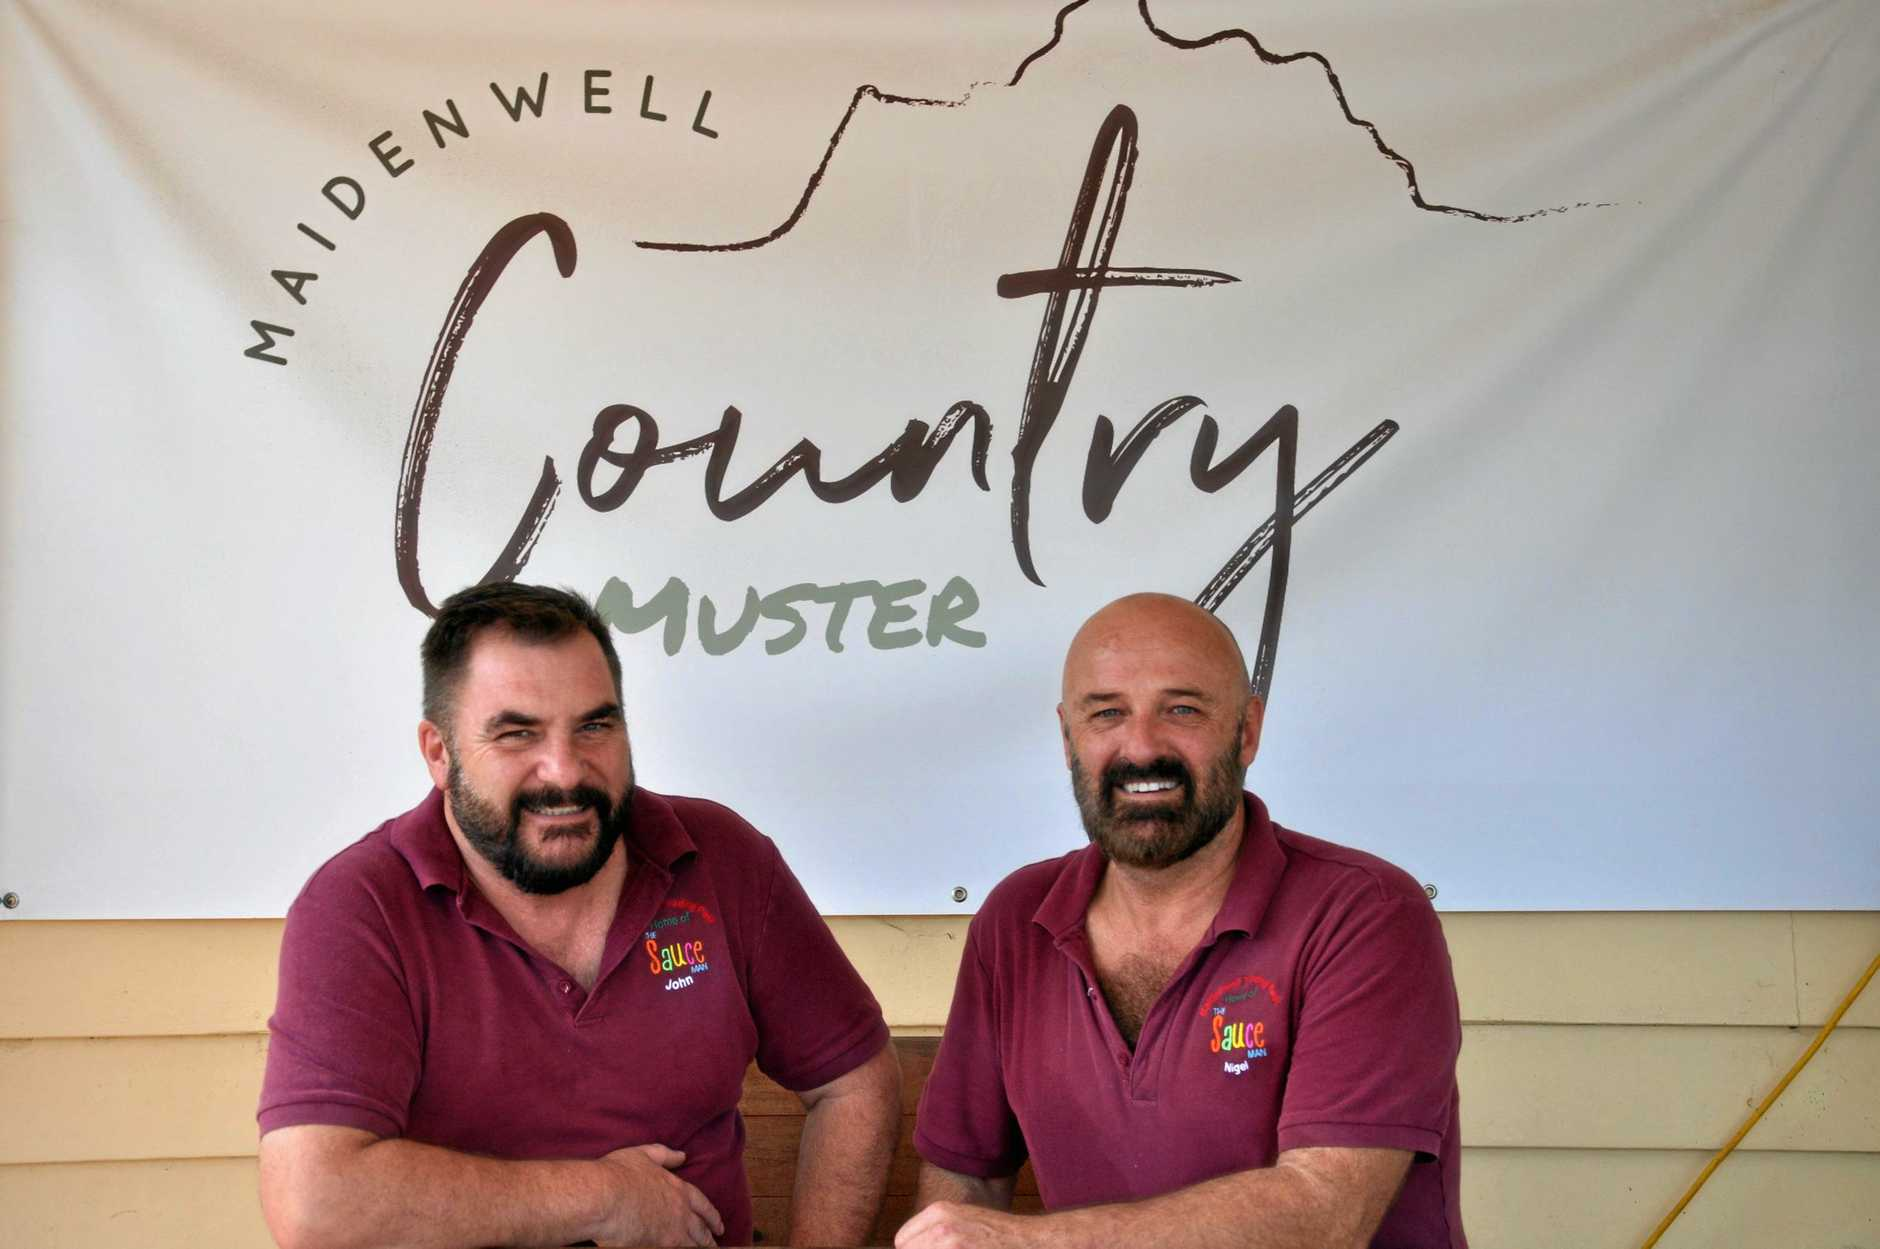 The men behind The Maidenwell Country Muster: Nigel Squibb and John Whitley.